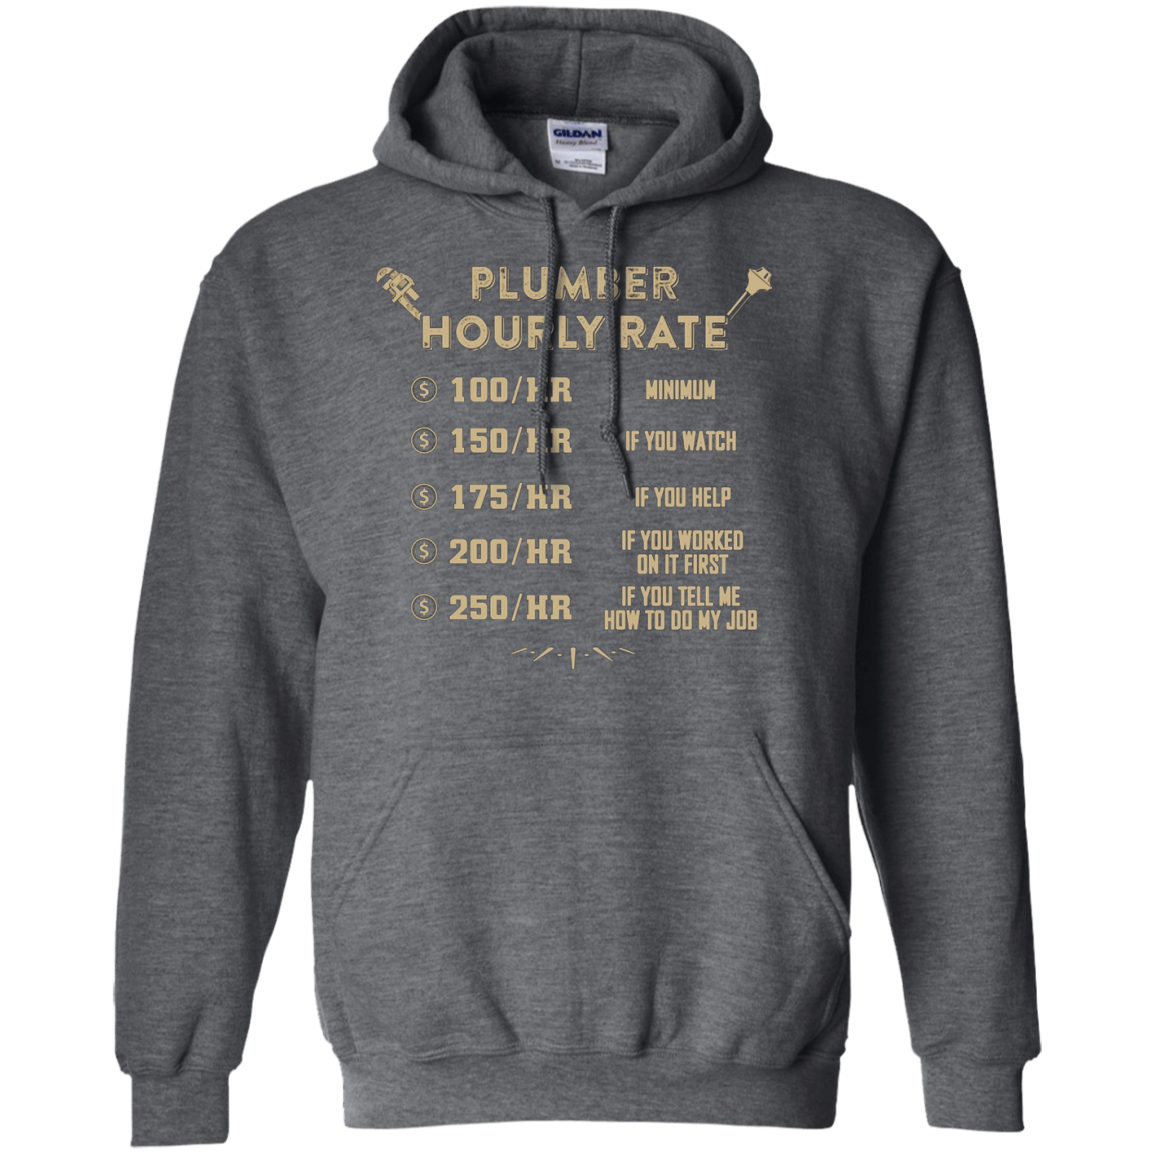 Plumber T-Shirt - Plumber Hourly Rate